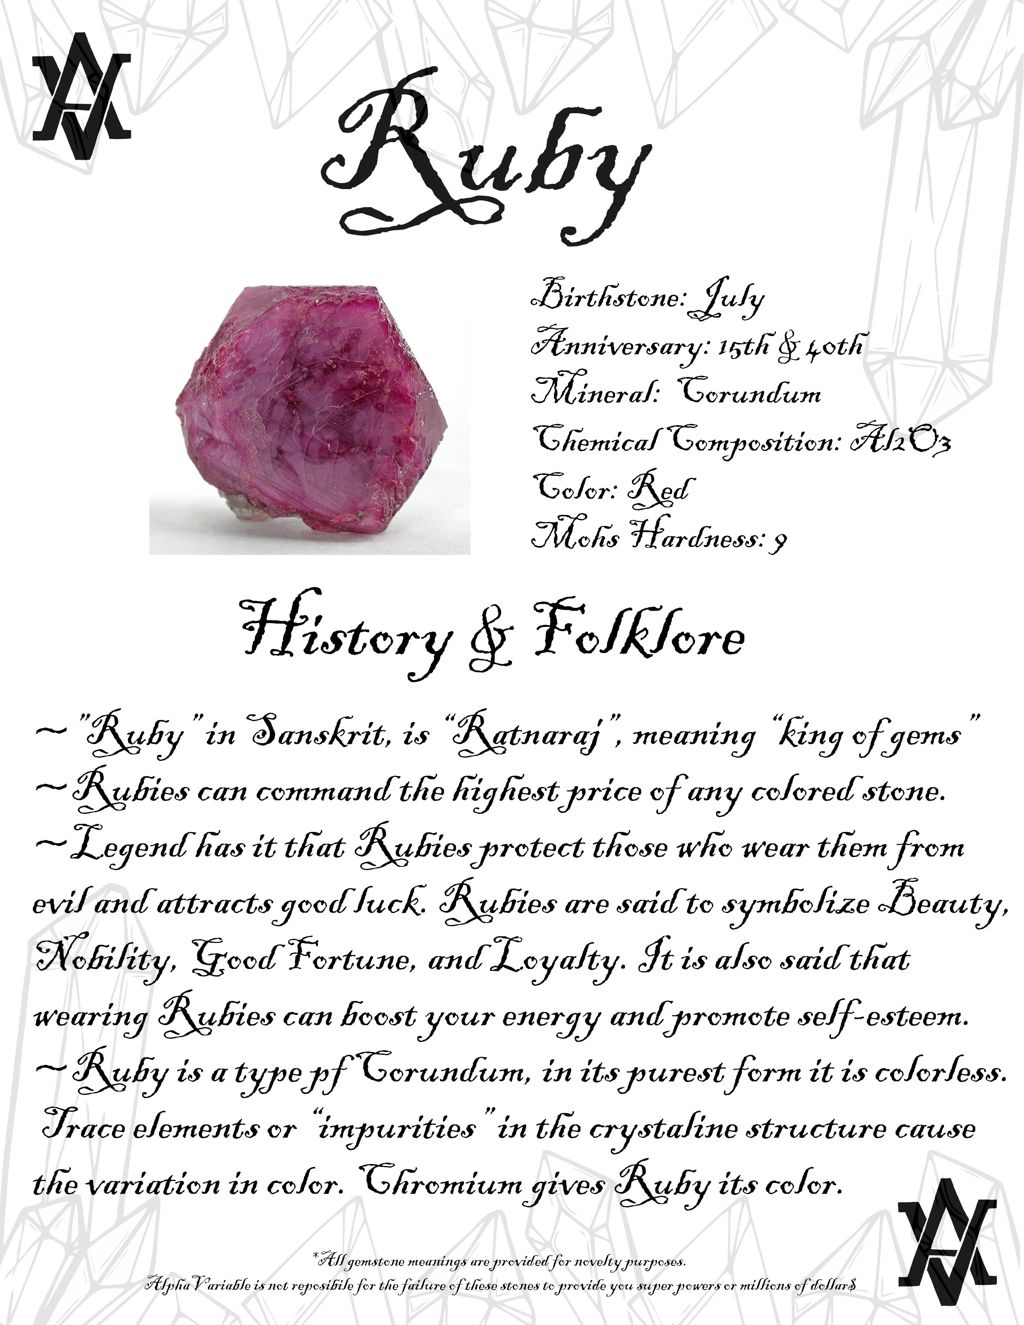 Ruby Gemstone Meaning History Facts Legend And Folklore About Rubies By Alphavariable Moonstone Gemstone Meani Crystal Healing Stones Crystal Meanings Crystals